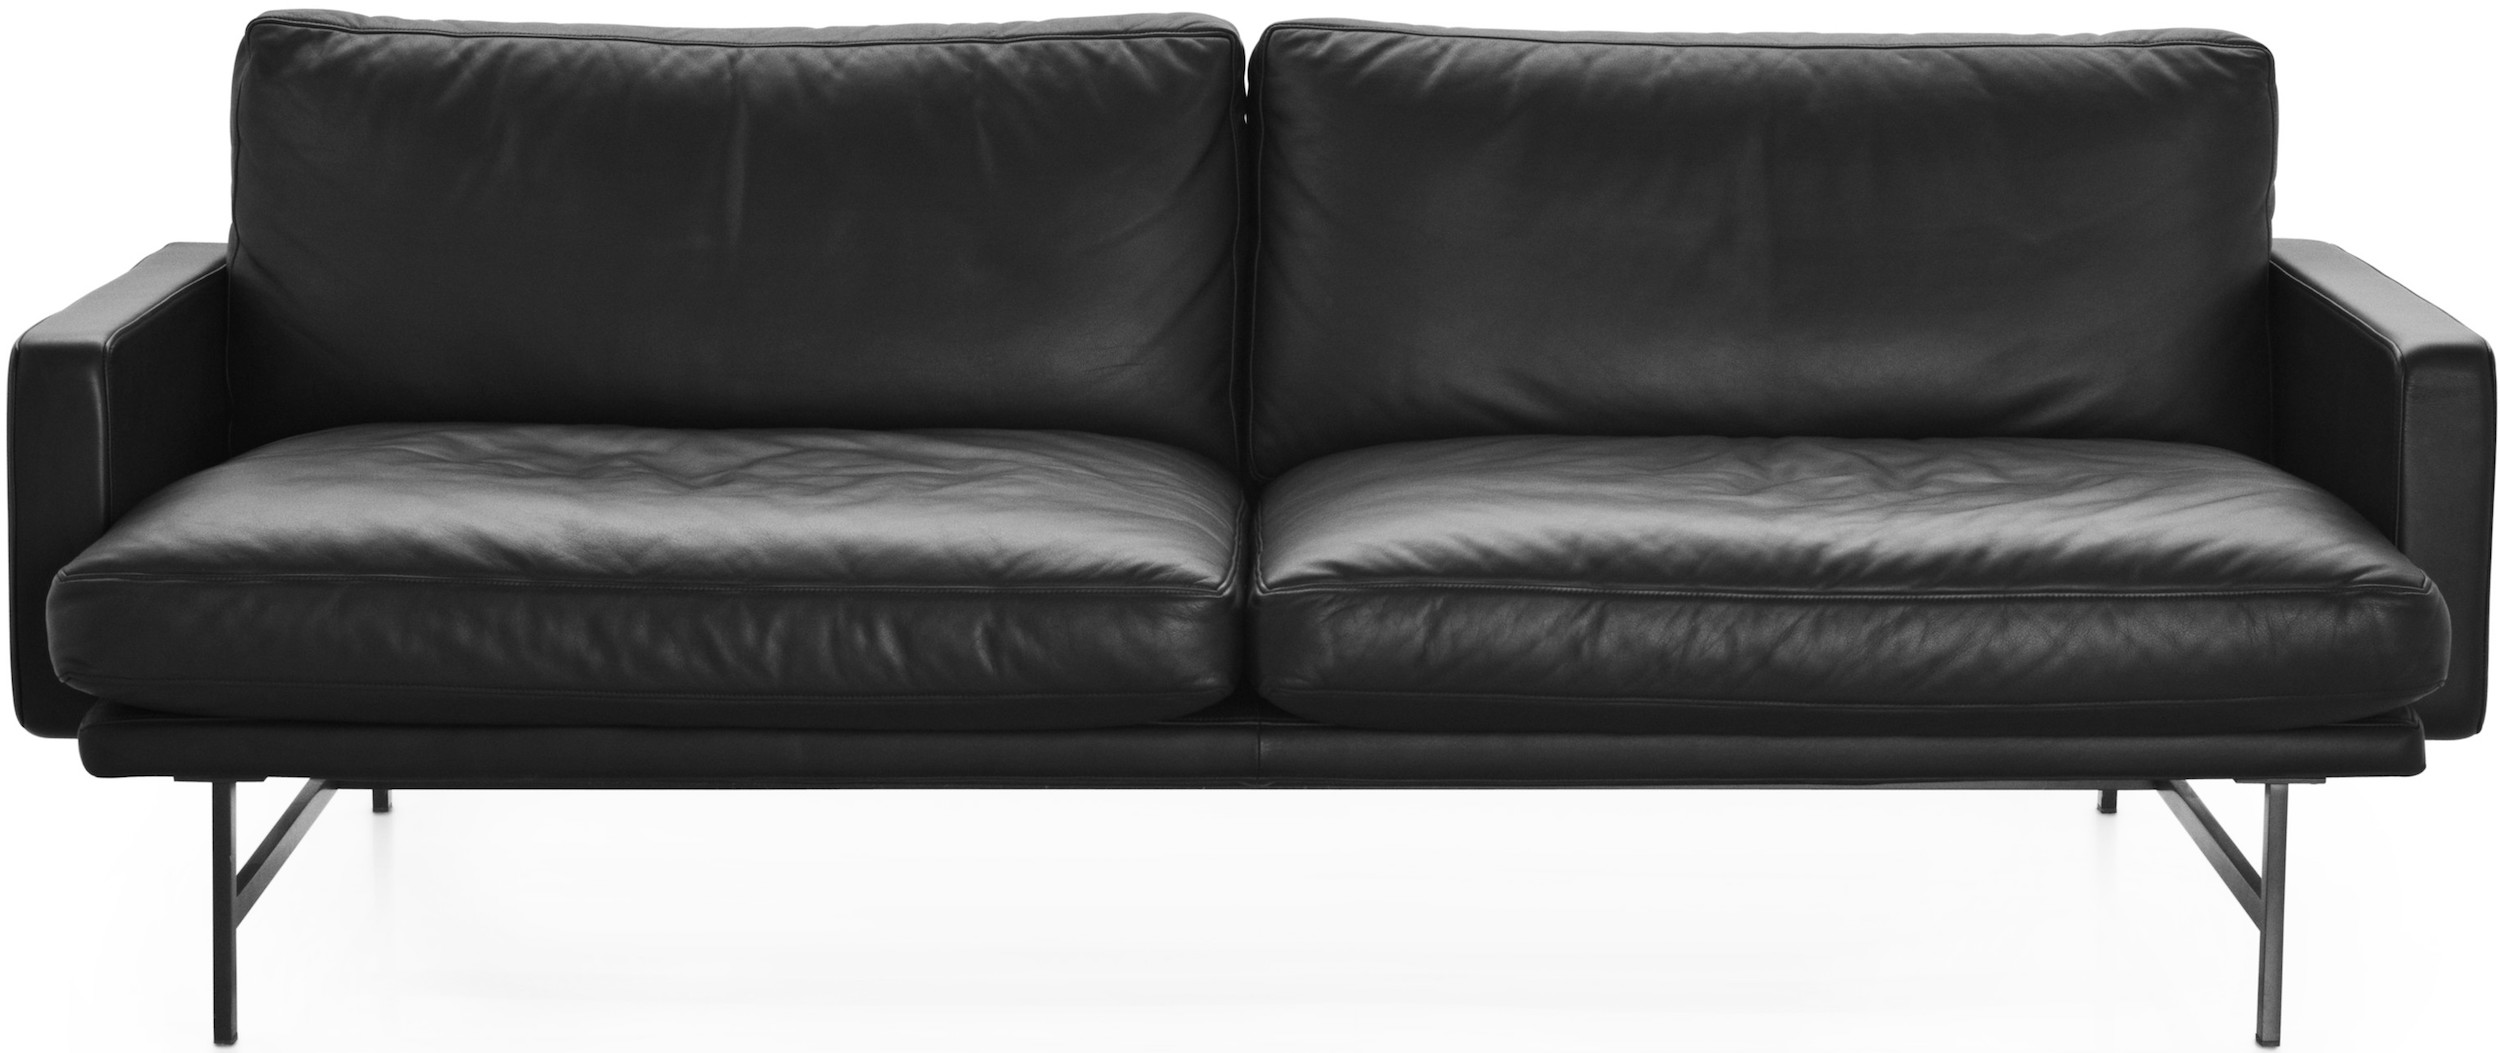 Piero Lissoni Modular Sofa Fritz Hansen Lissoni Sofa Design Piero Lissoni